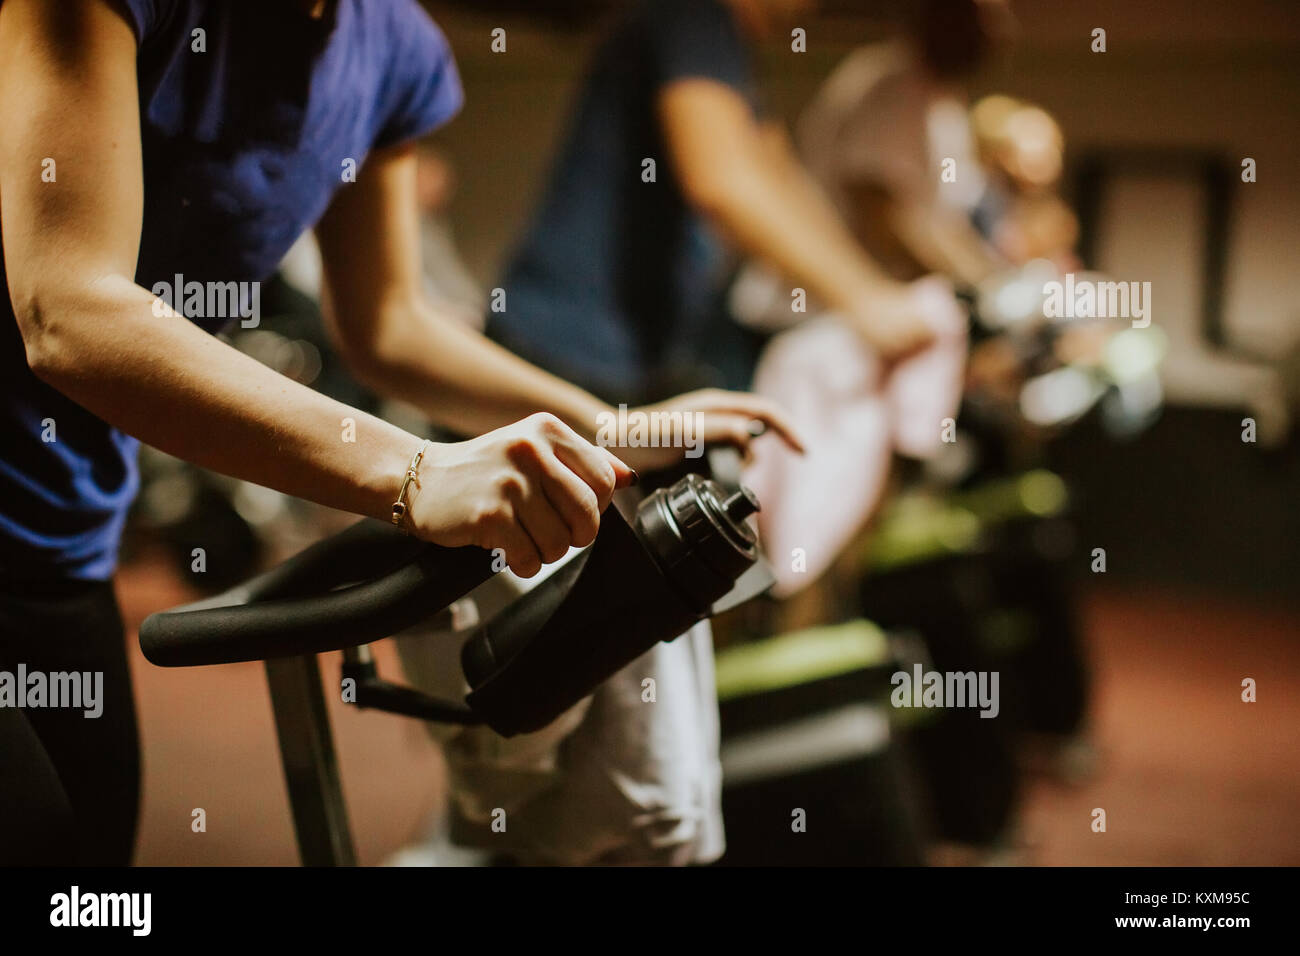 Randonnée à vélo classe. Fat Burning Workout Photo Stock